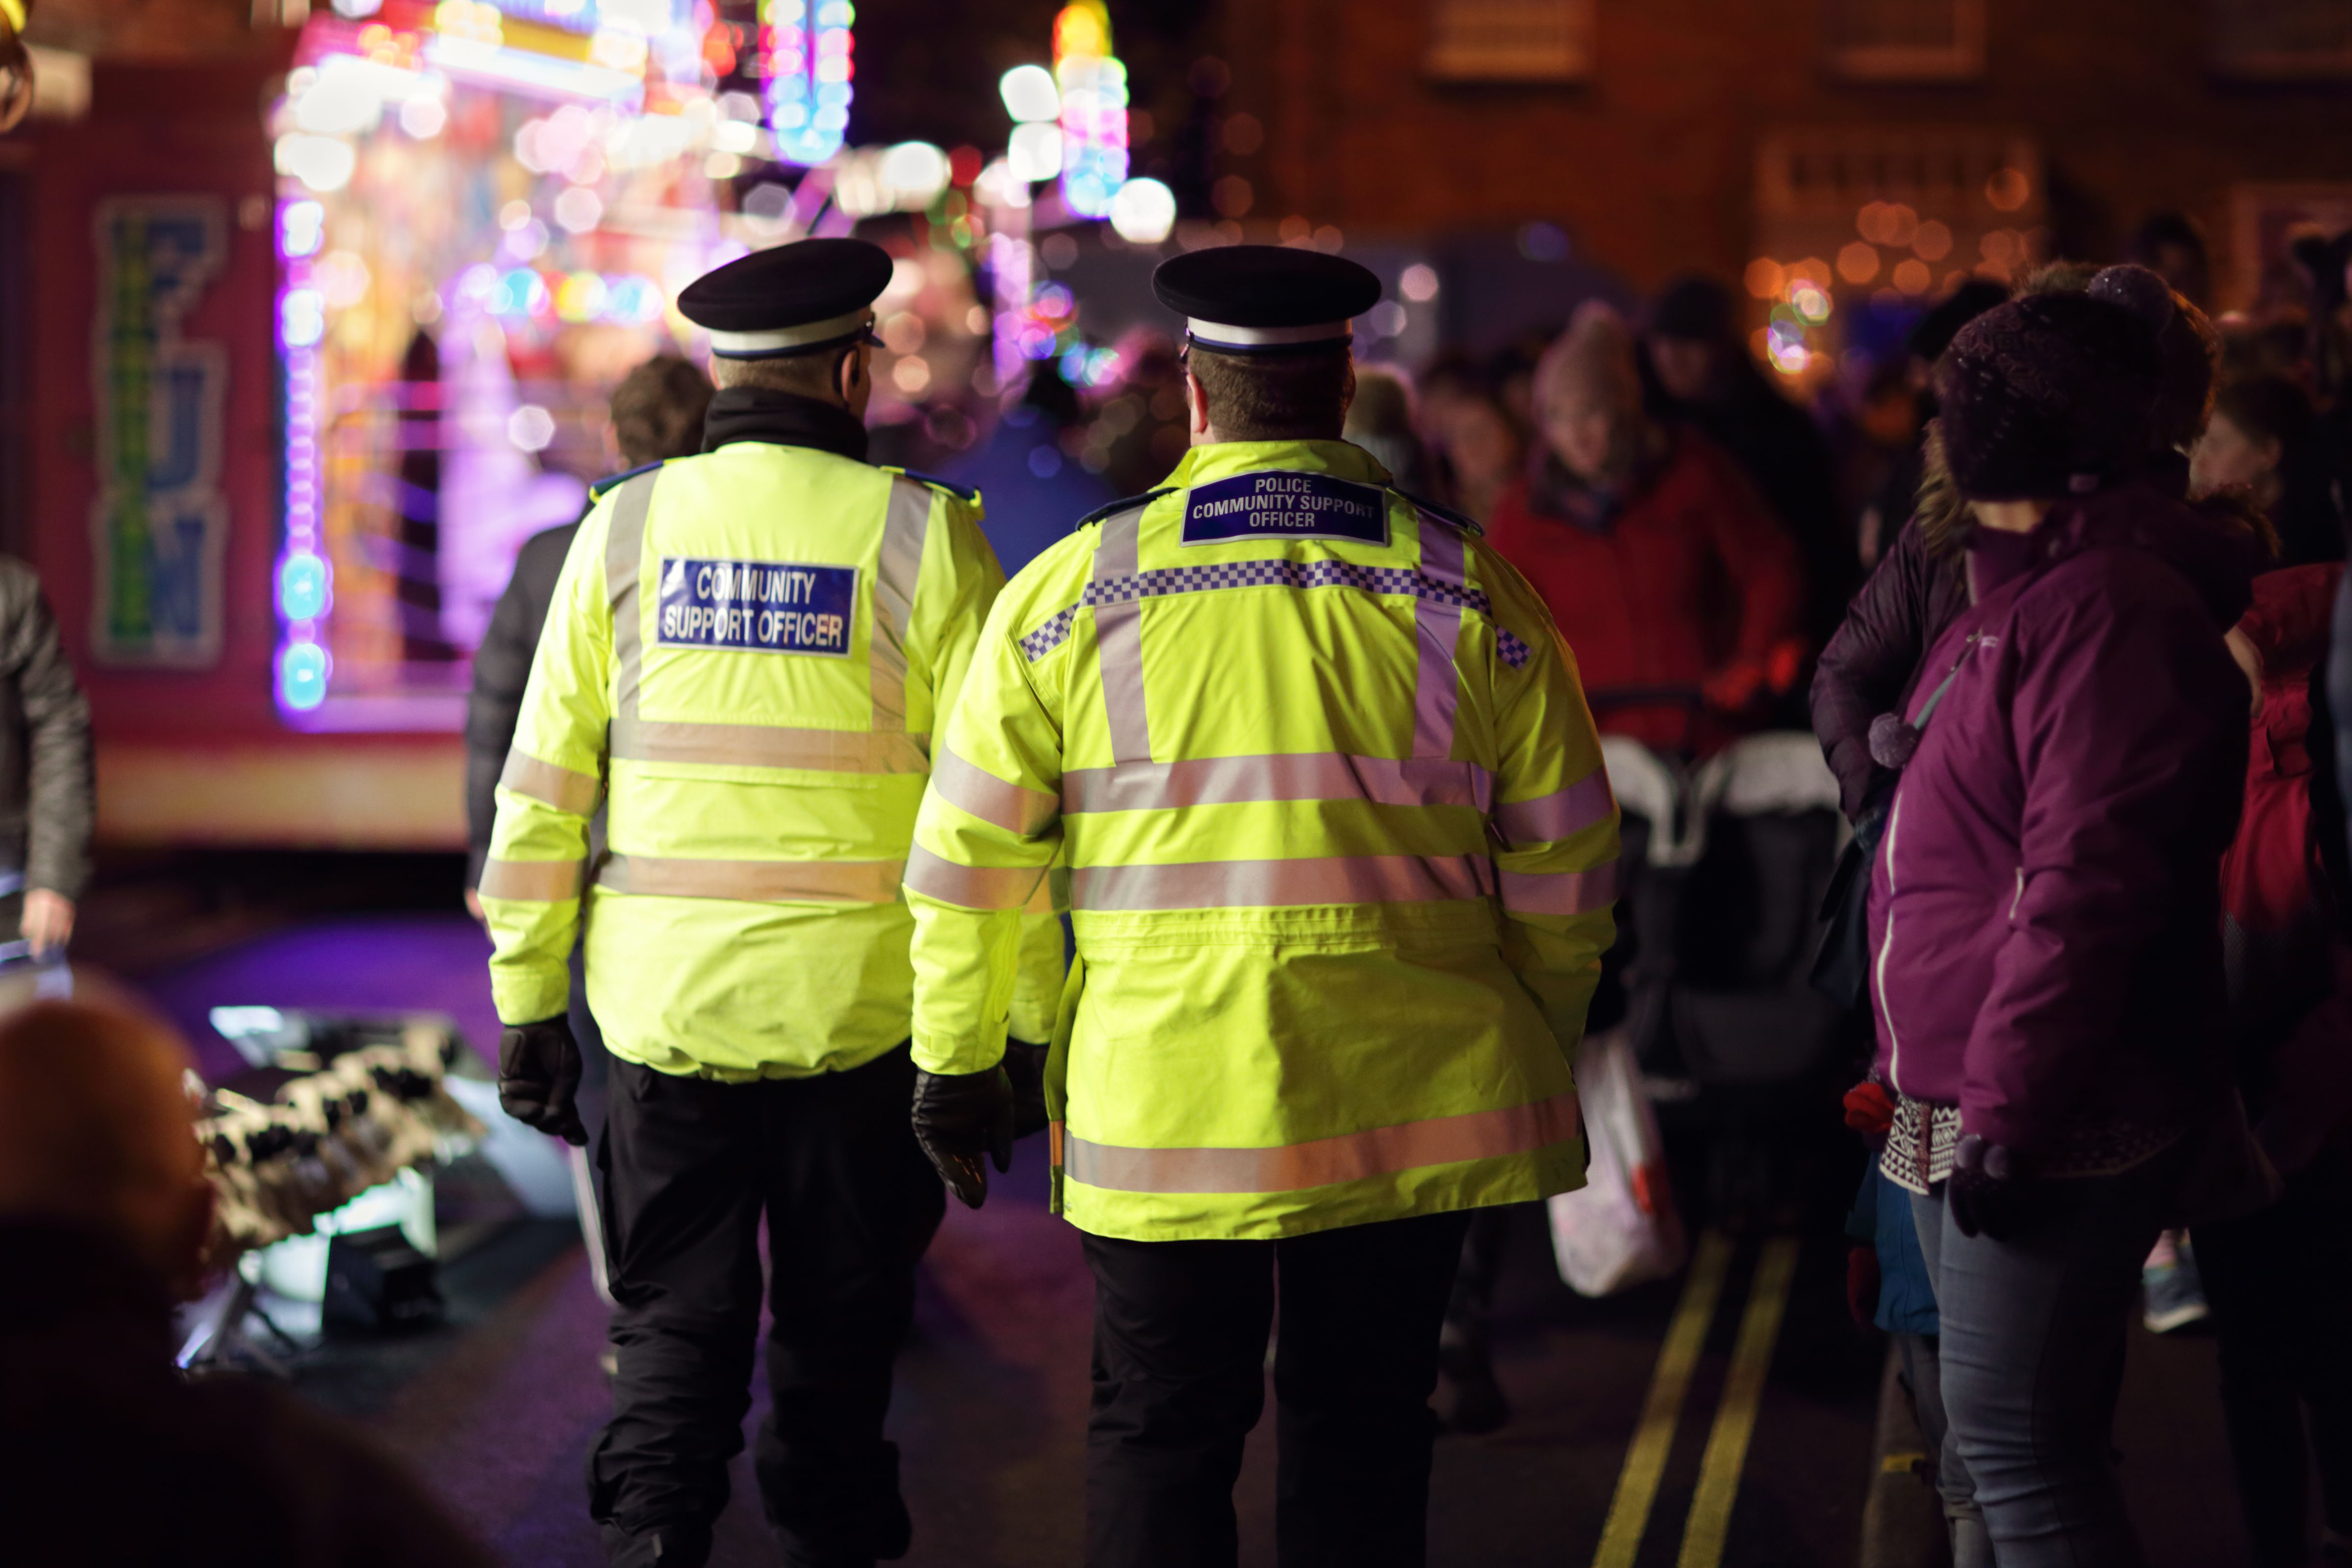 Police in hi-visibility jackets practising crowd control at an event in the UK